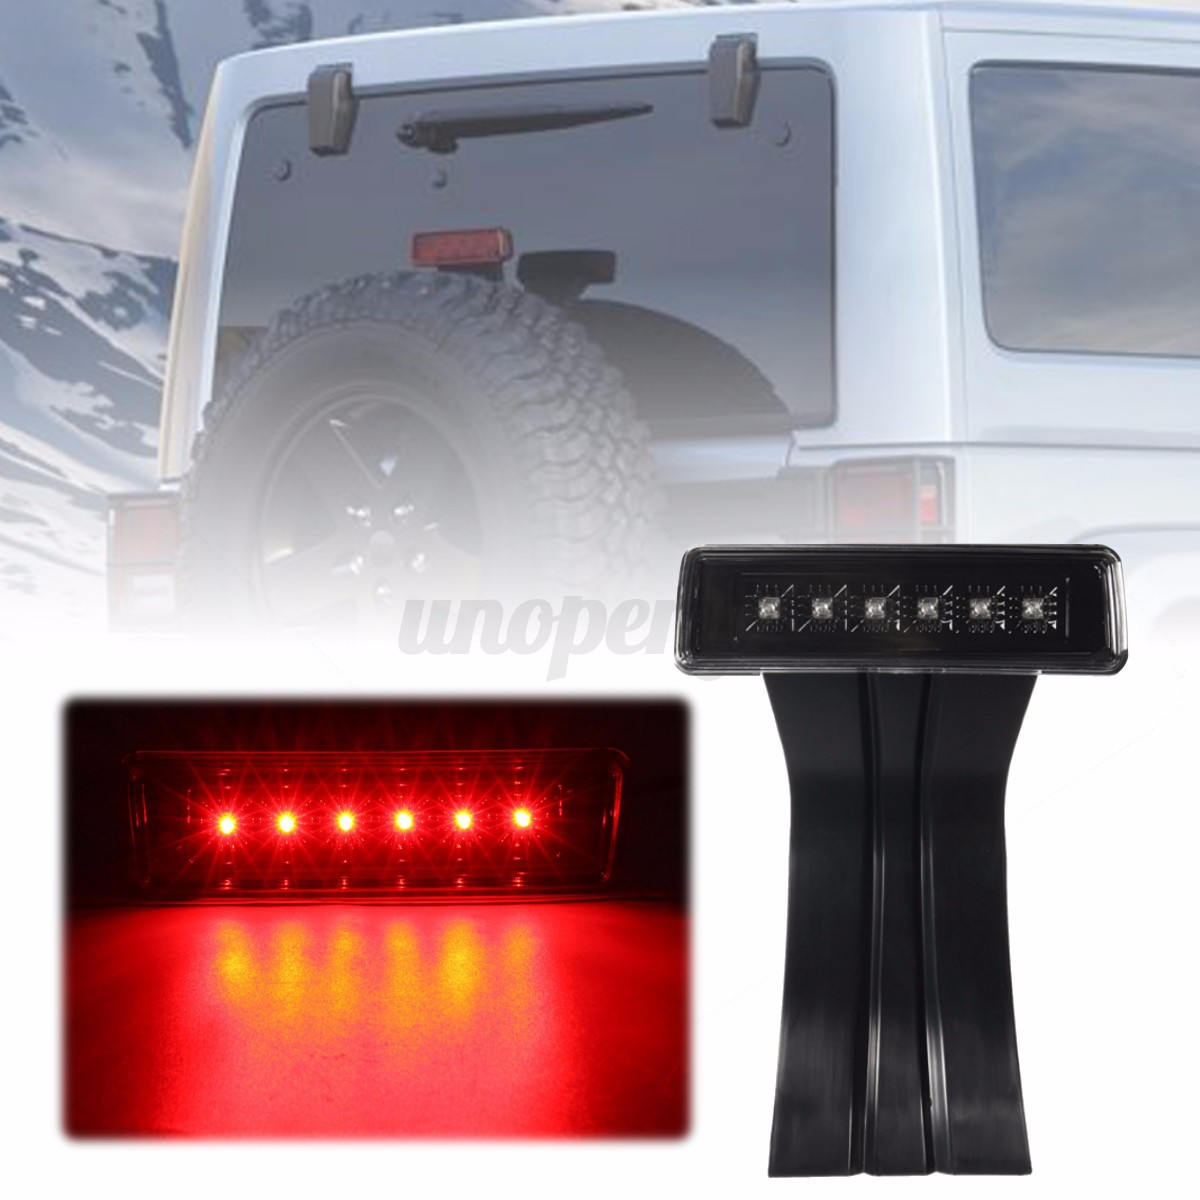 Jeep Wrangler Third Tail Light Wiring Diagrams Color Led Clear Lens 3rd Rear Brake Lamp For 1994 Lights 95 Diagram